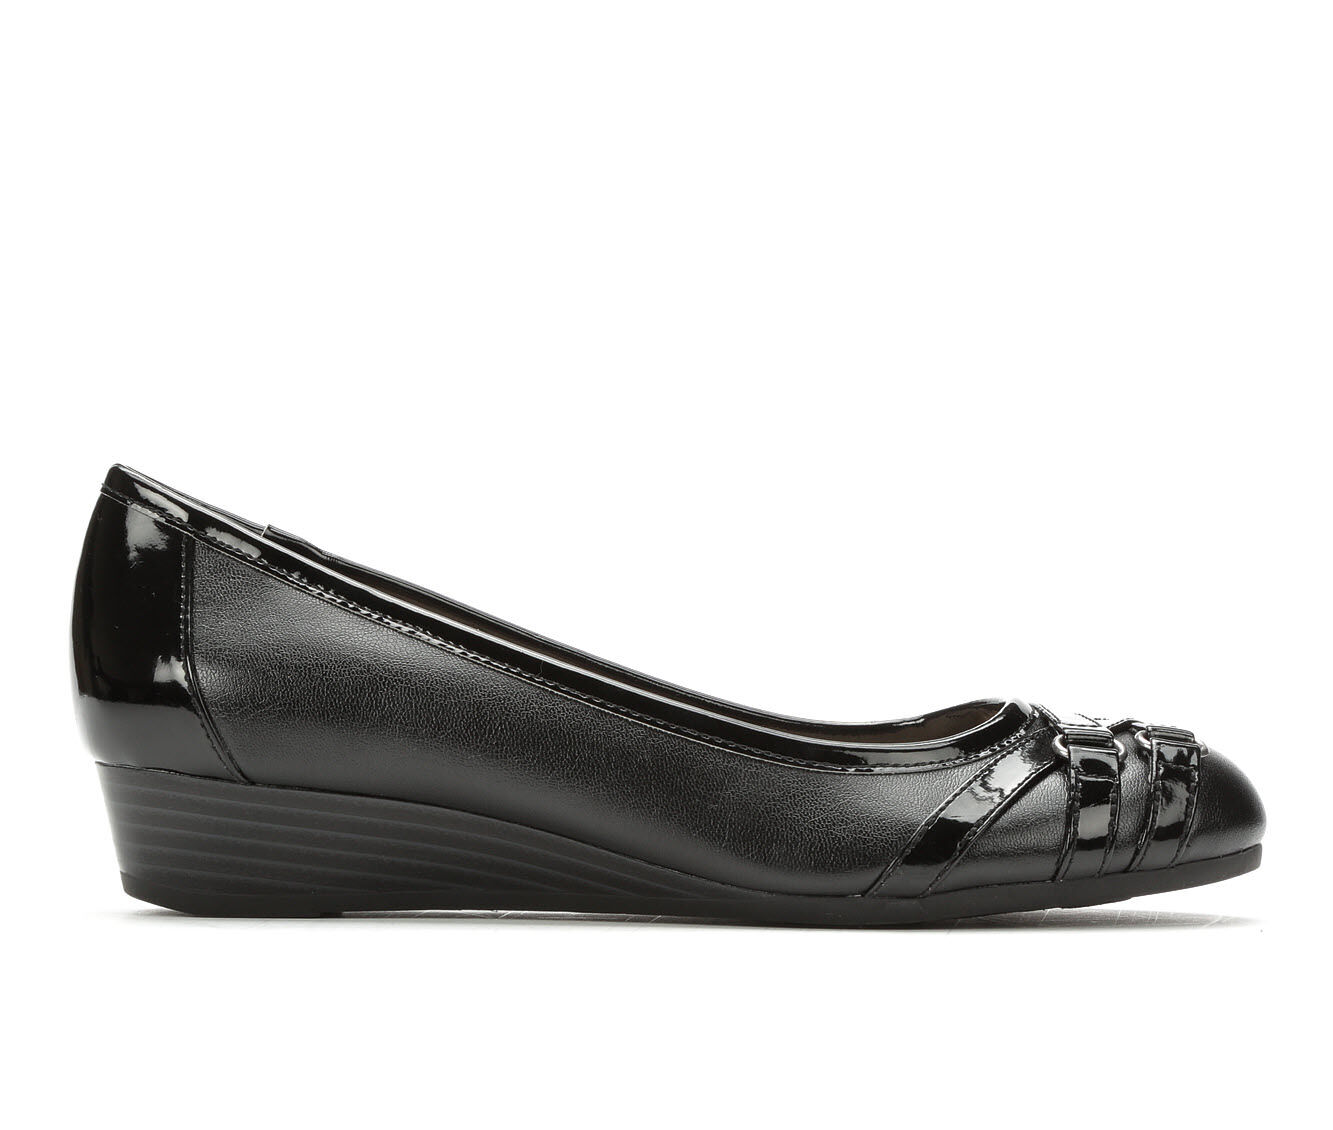 Economic popular Women's LifeStride Flair Comfort Wedges Black